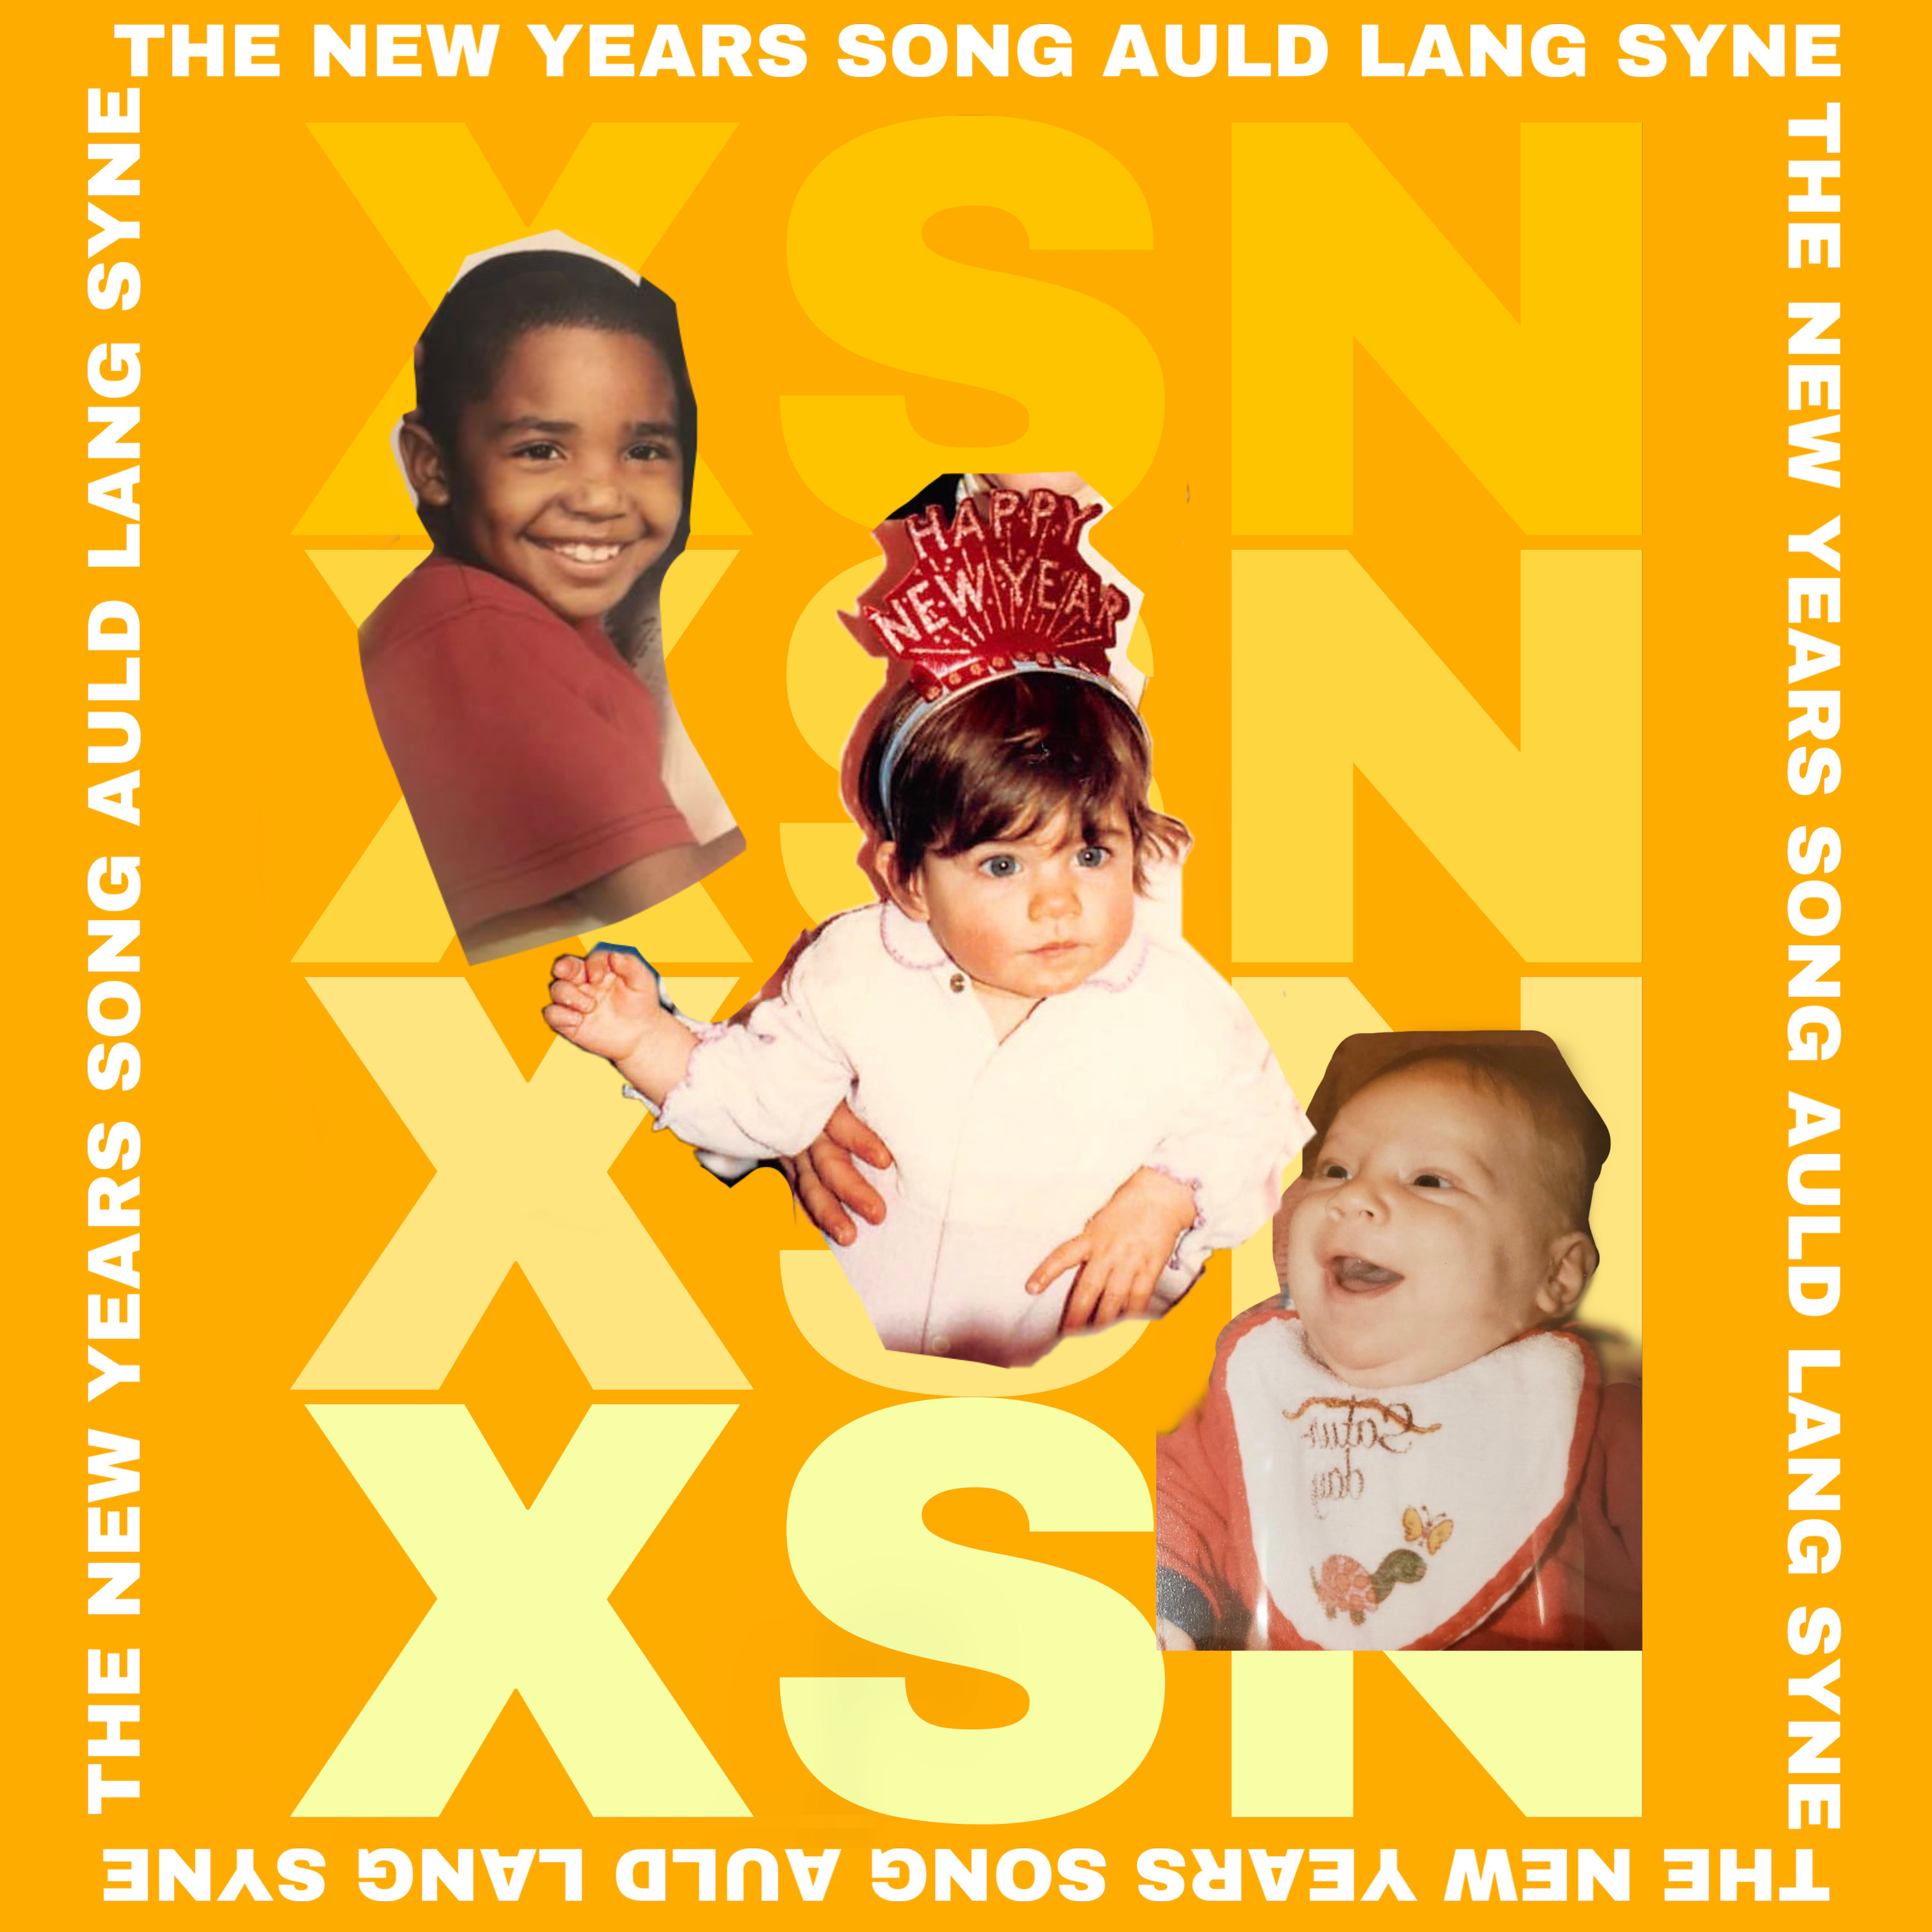 XSN - The New Years Song (Auld Lang Syne)